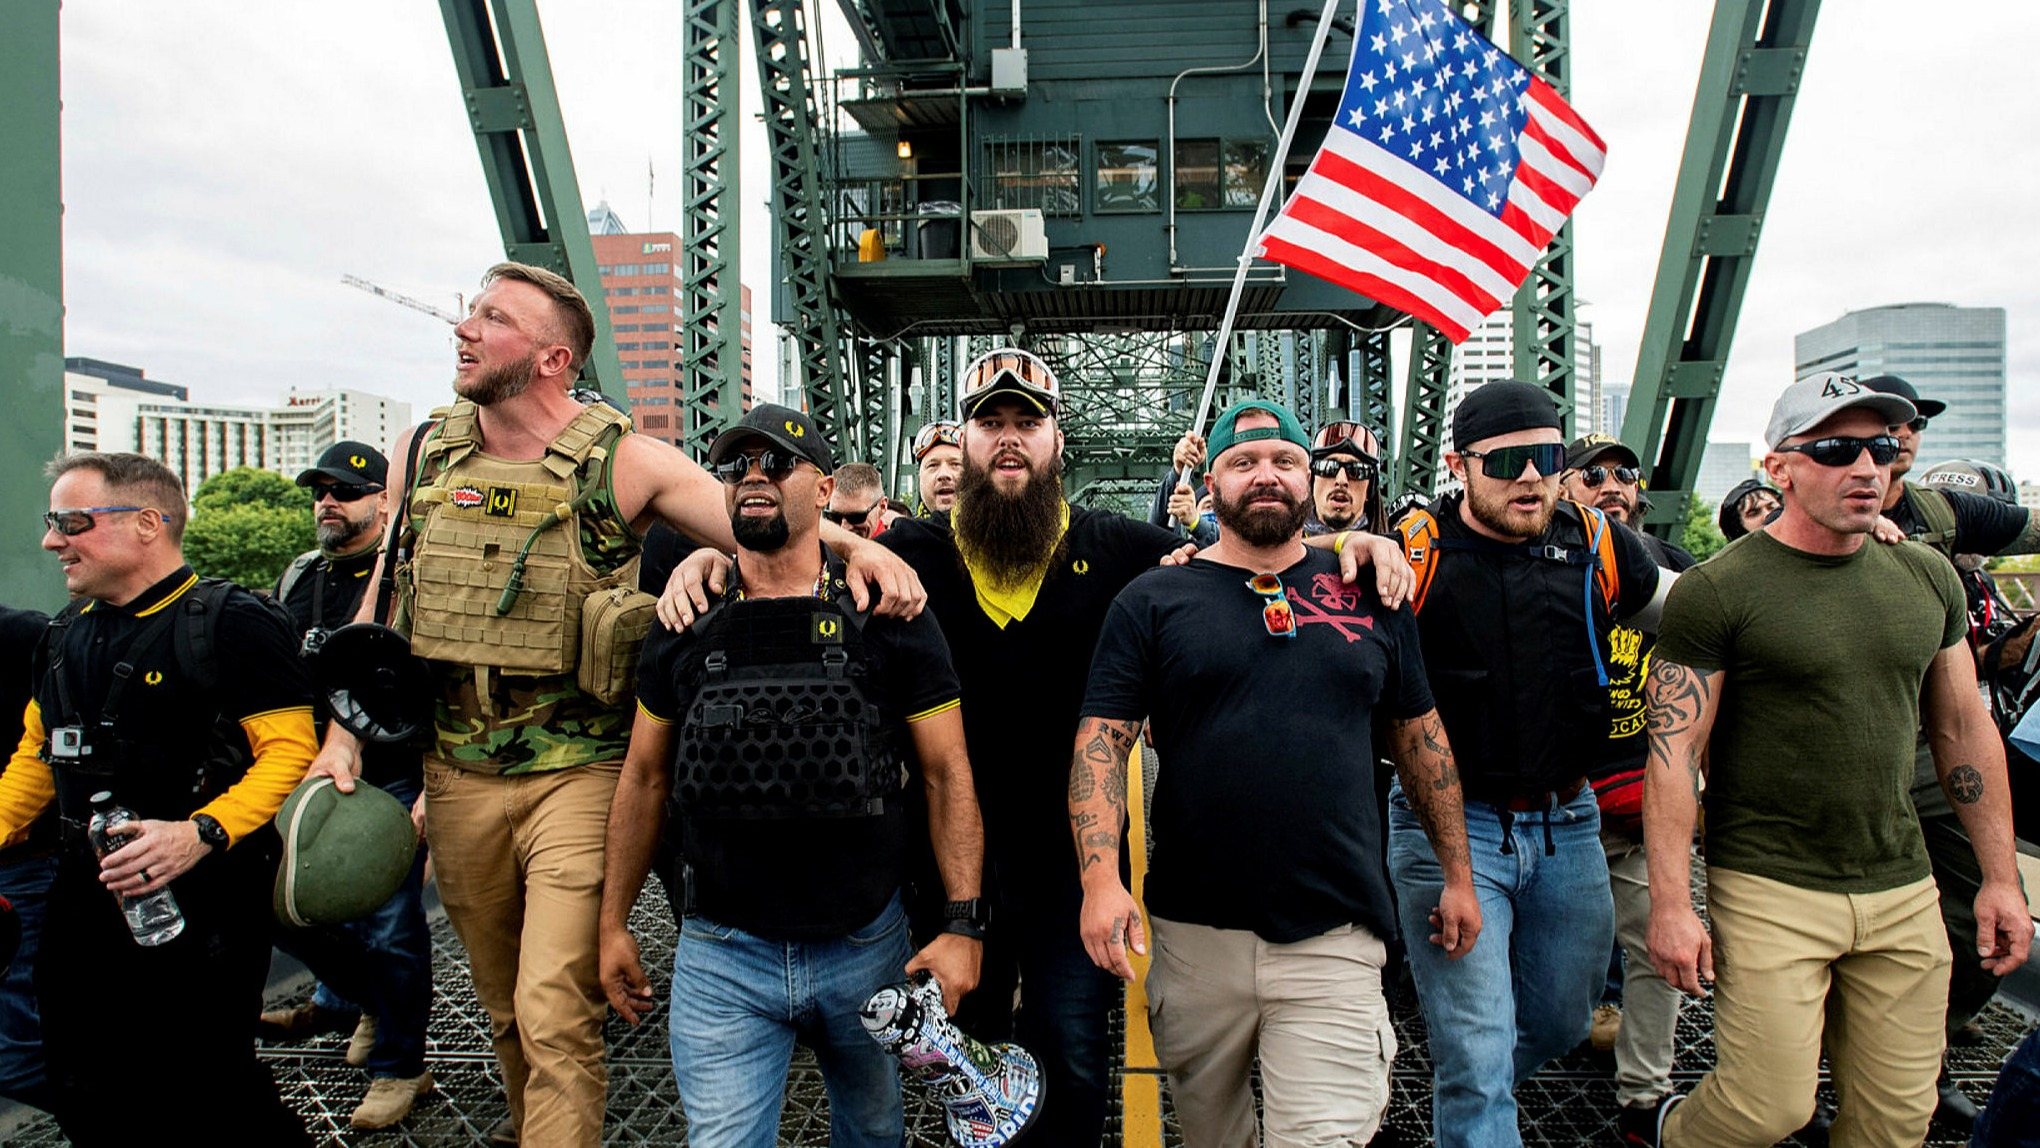 Trump comments embolden far-right Proud Boys | Financial Times